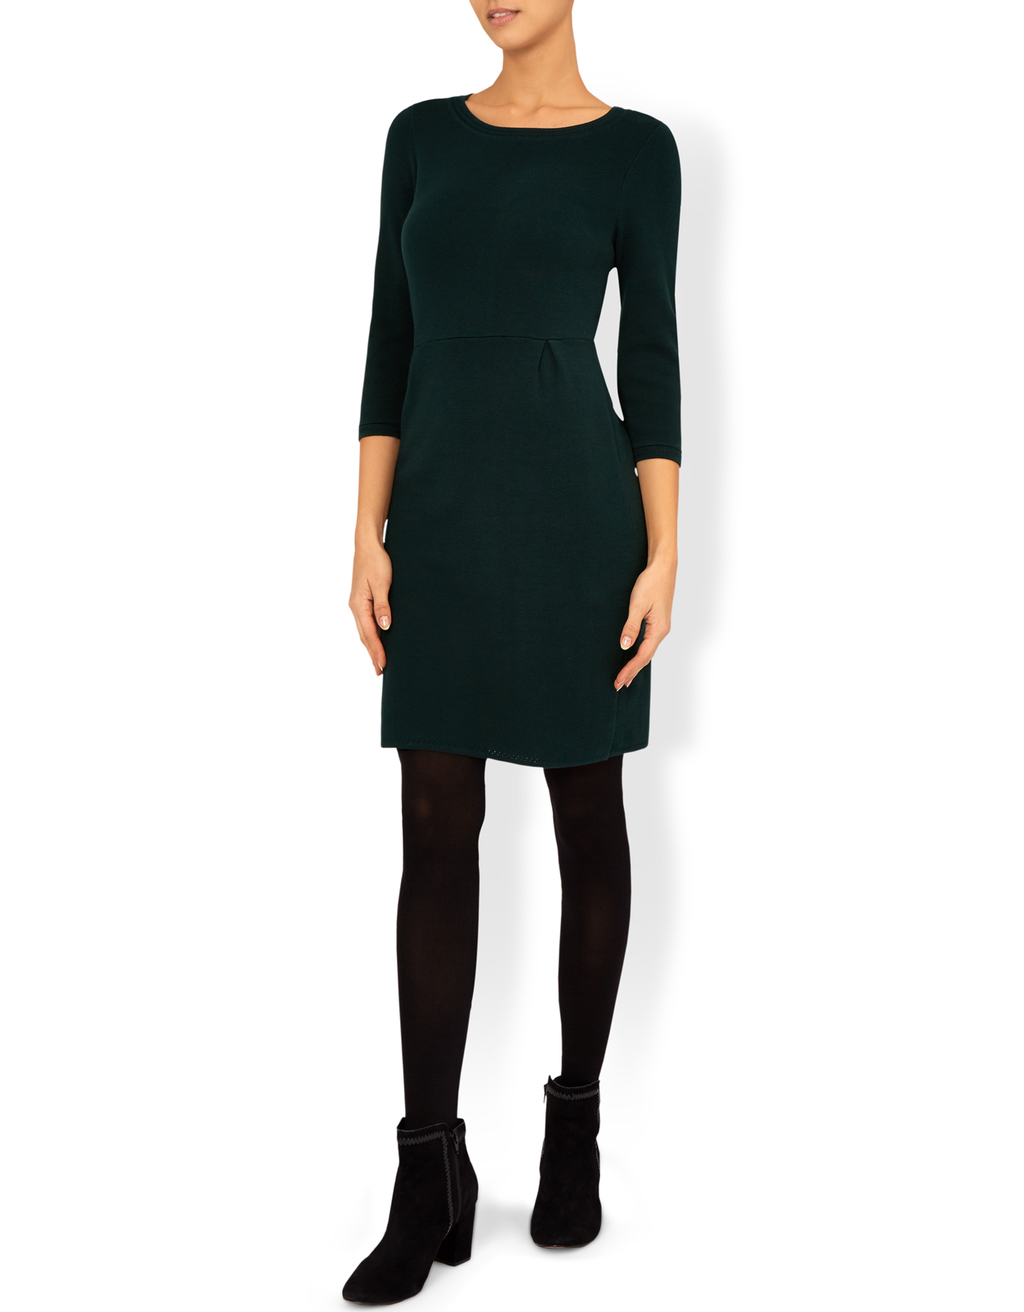 Stella Structured Tulip Dress - neckline: round neck; pattern: plain; style: tulip; predominant colour: black; occasions: evening; length: just above the knee; fit: body skimming; fibres: polyester/polyamide - stretch; sleeve length: 3/4 length; sleeve style: standard; pattern type: fabric; texture group: jersey - stretchy/drapey; season: a/w 2016; wardrobe: event